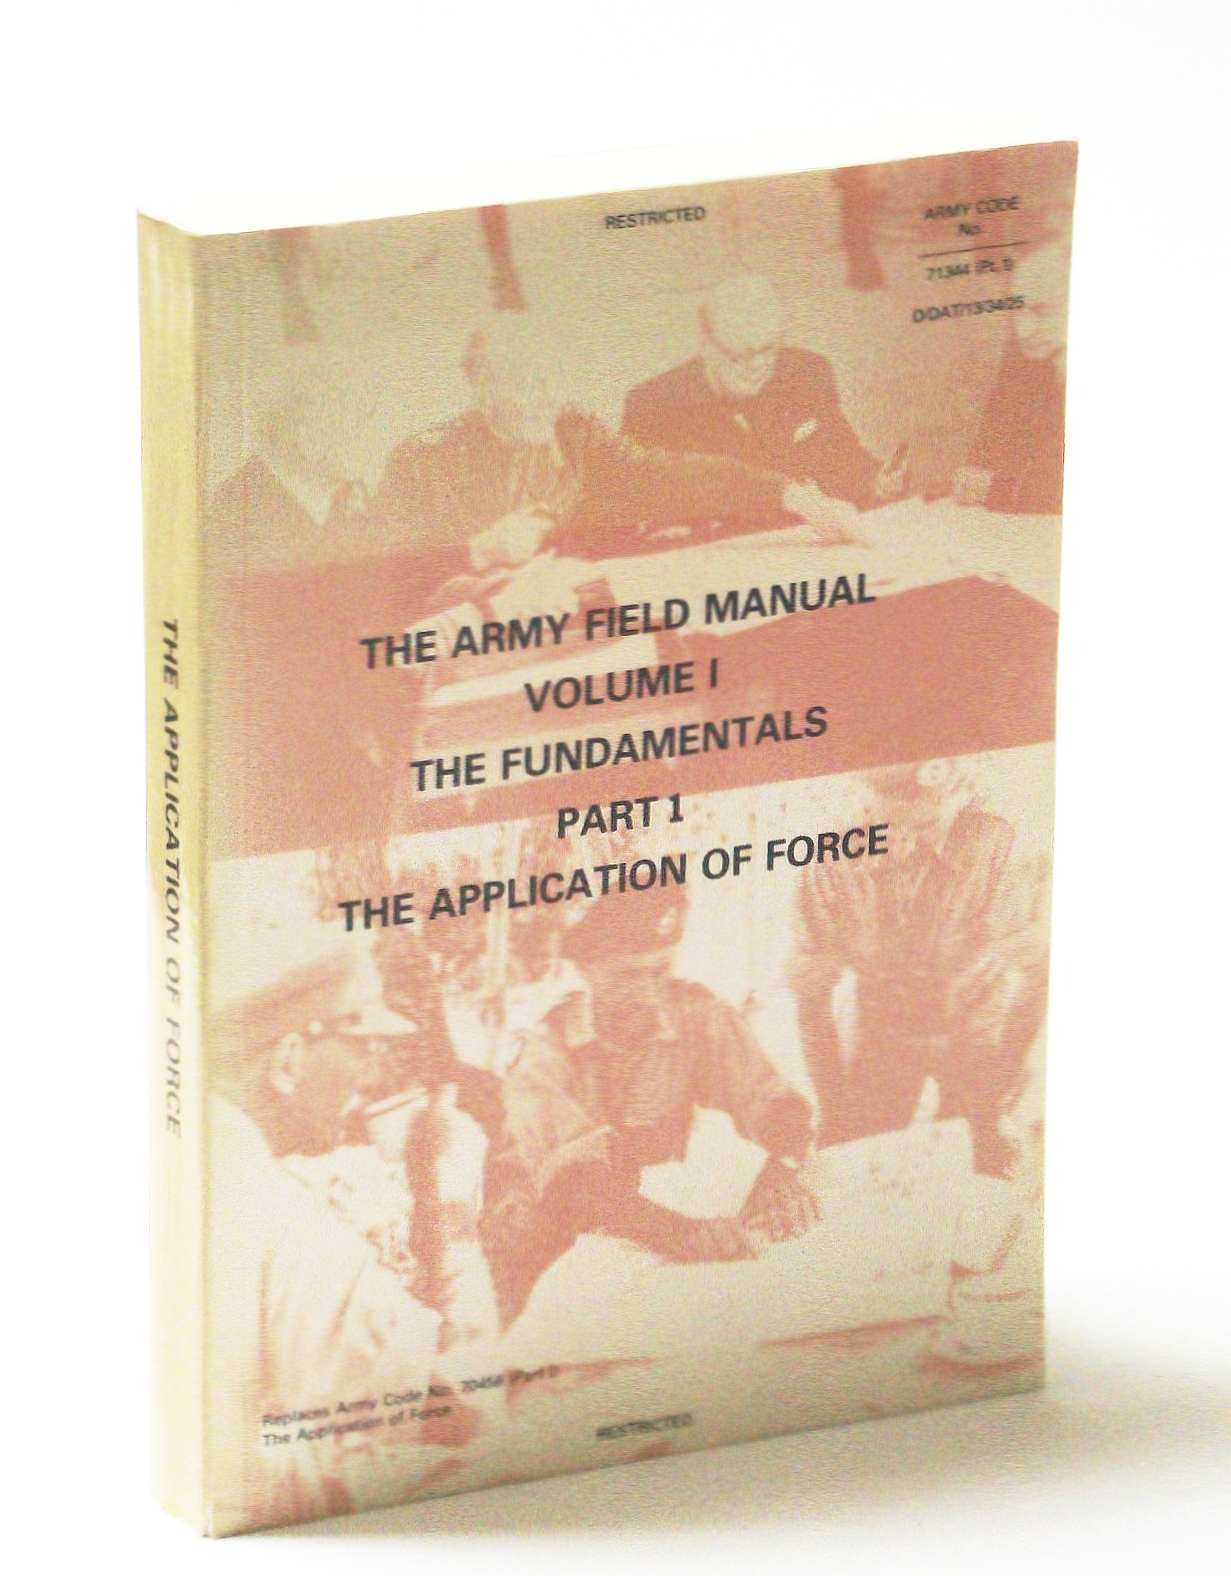 Image for The Army Field Manual Volume I, The Fundamentals, Part I, The Application of Force - Army Code No. 71344 (Pt.1) D/DAT/13/34/25